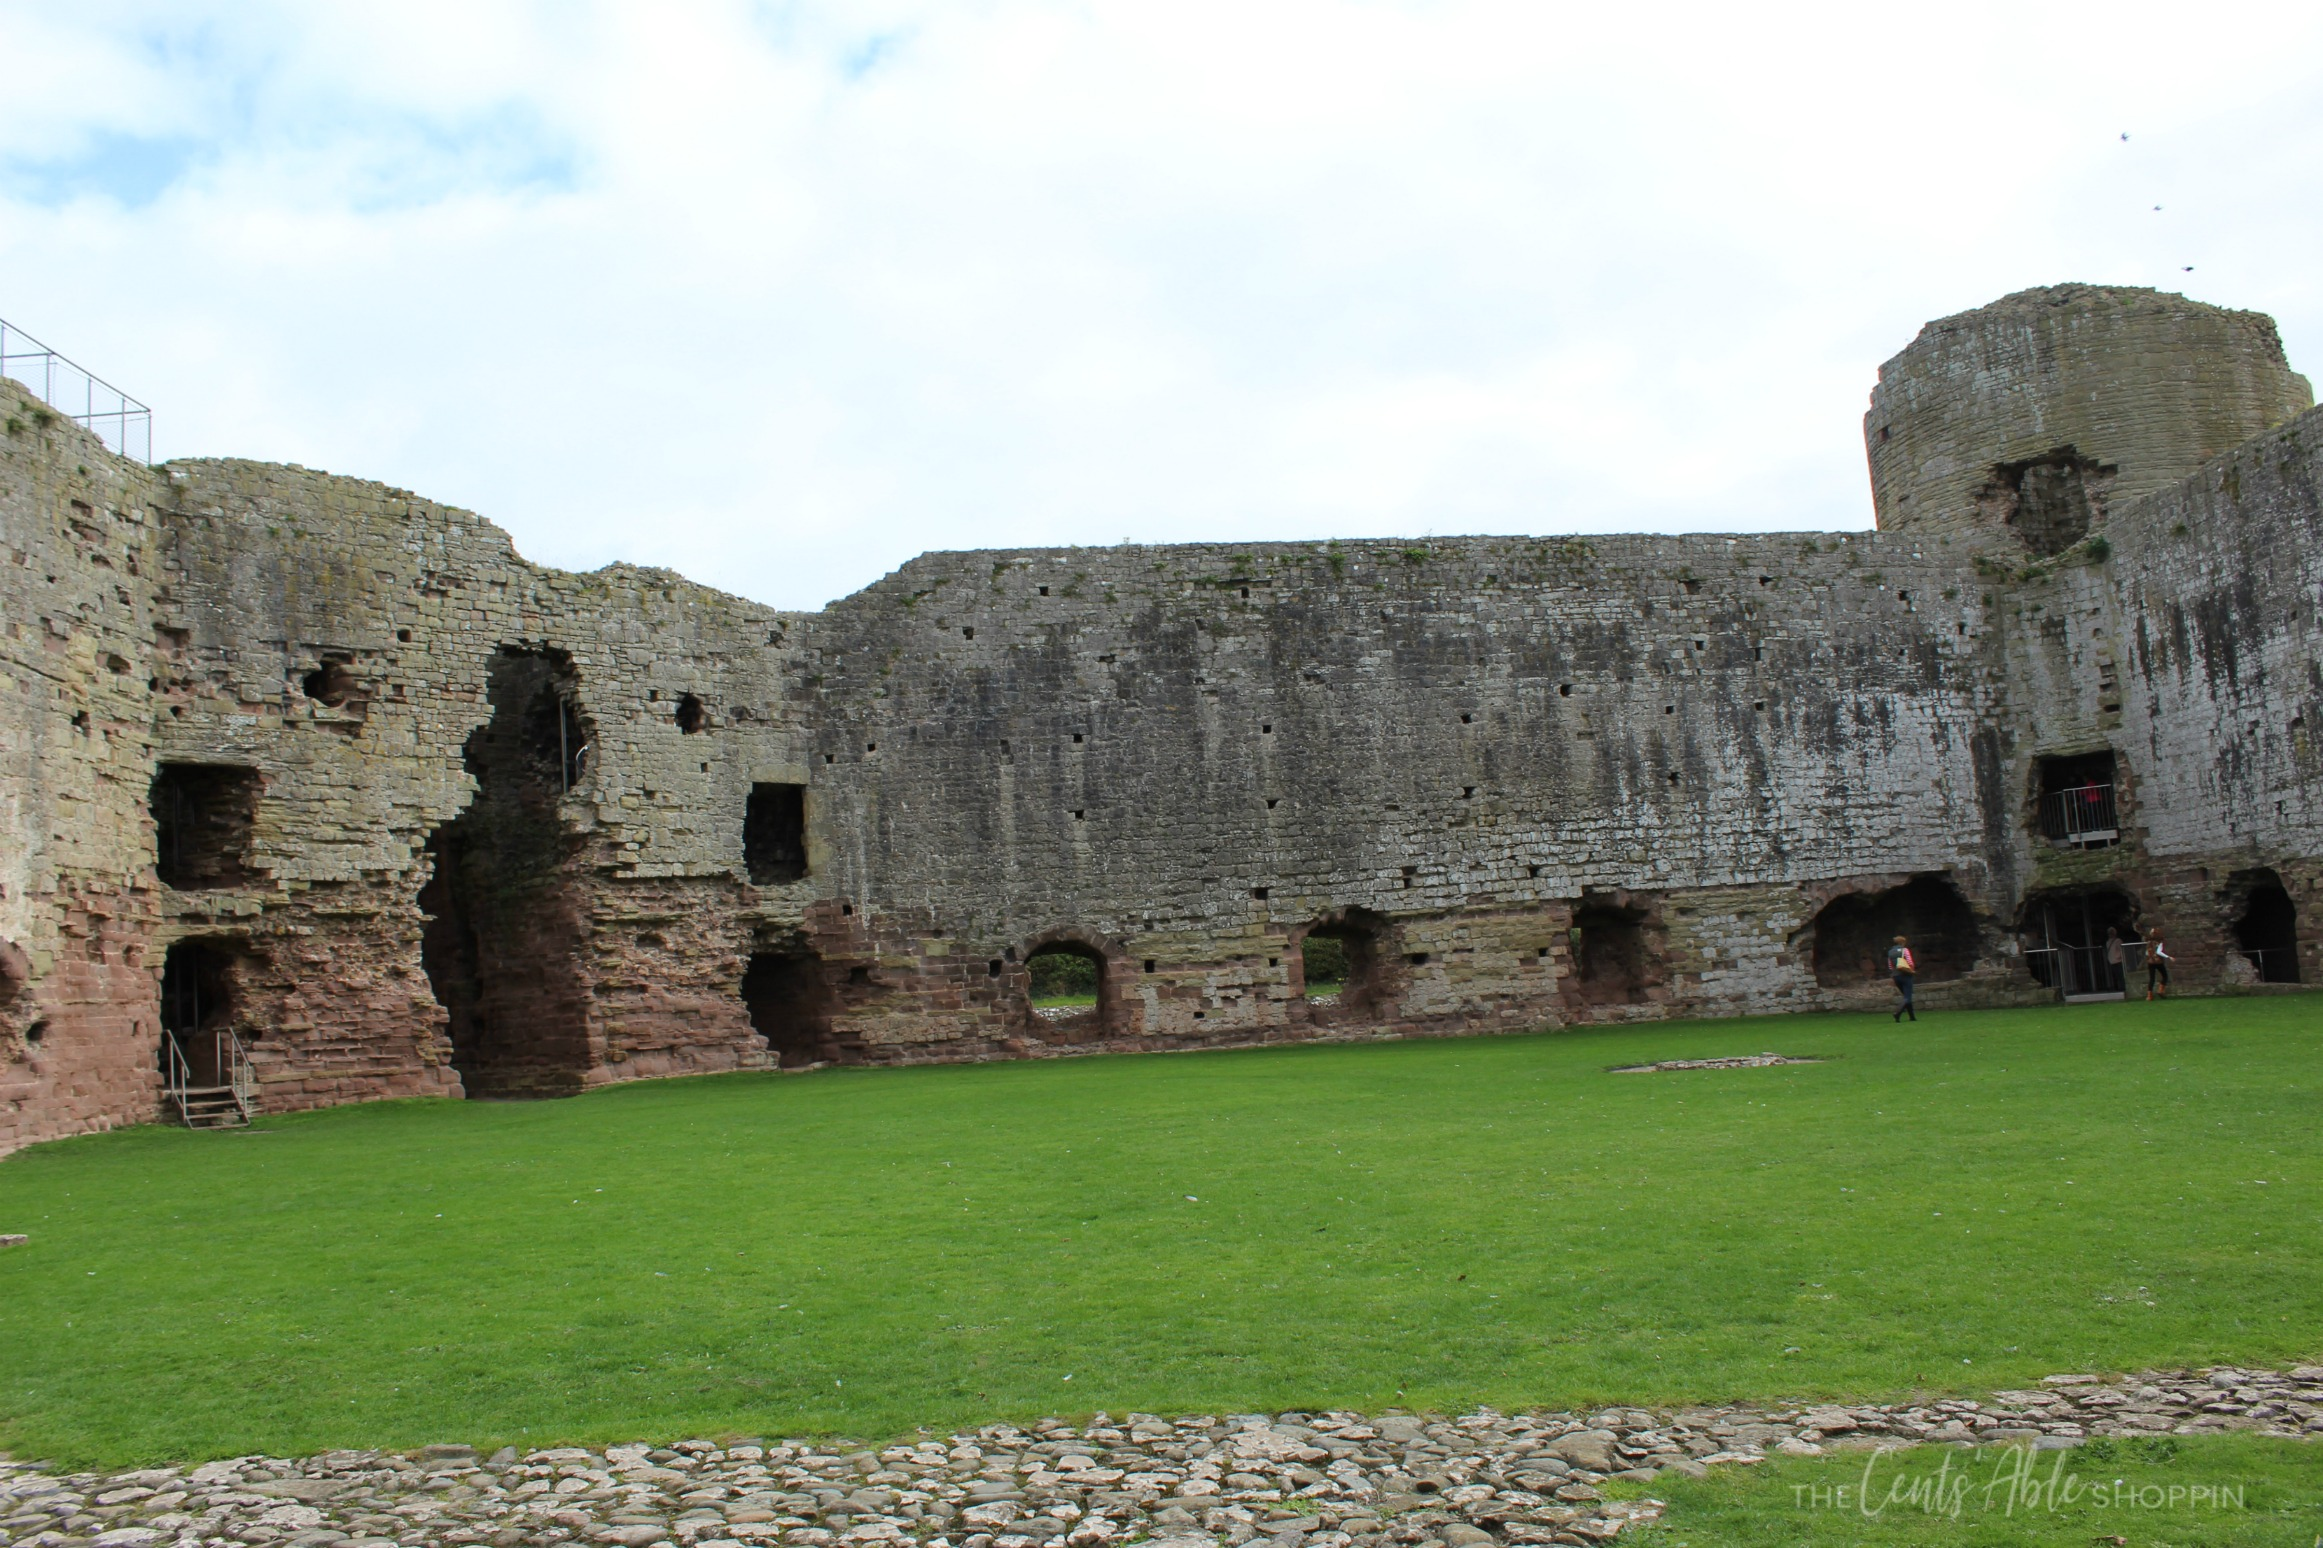 Castle  Courtyard \\  Rhuddlan Castle is a castle located in Rhuddlan, Denbighshire, Wales. It was one of a series of castles erected by King Edward I in 1277.